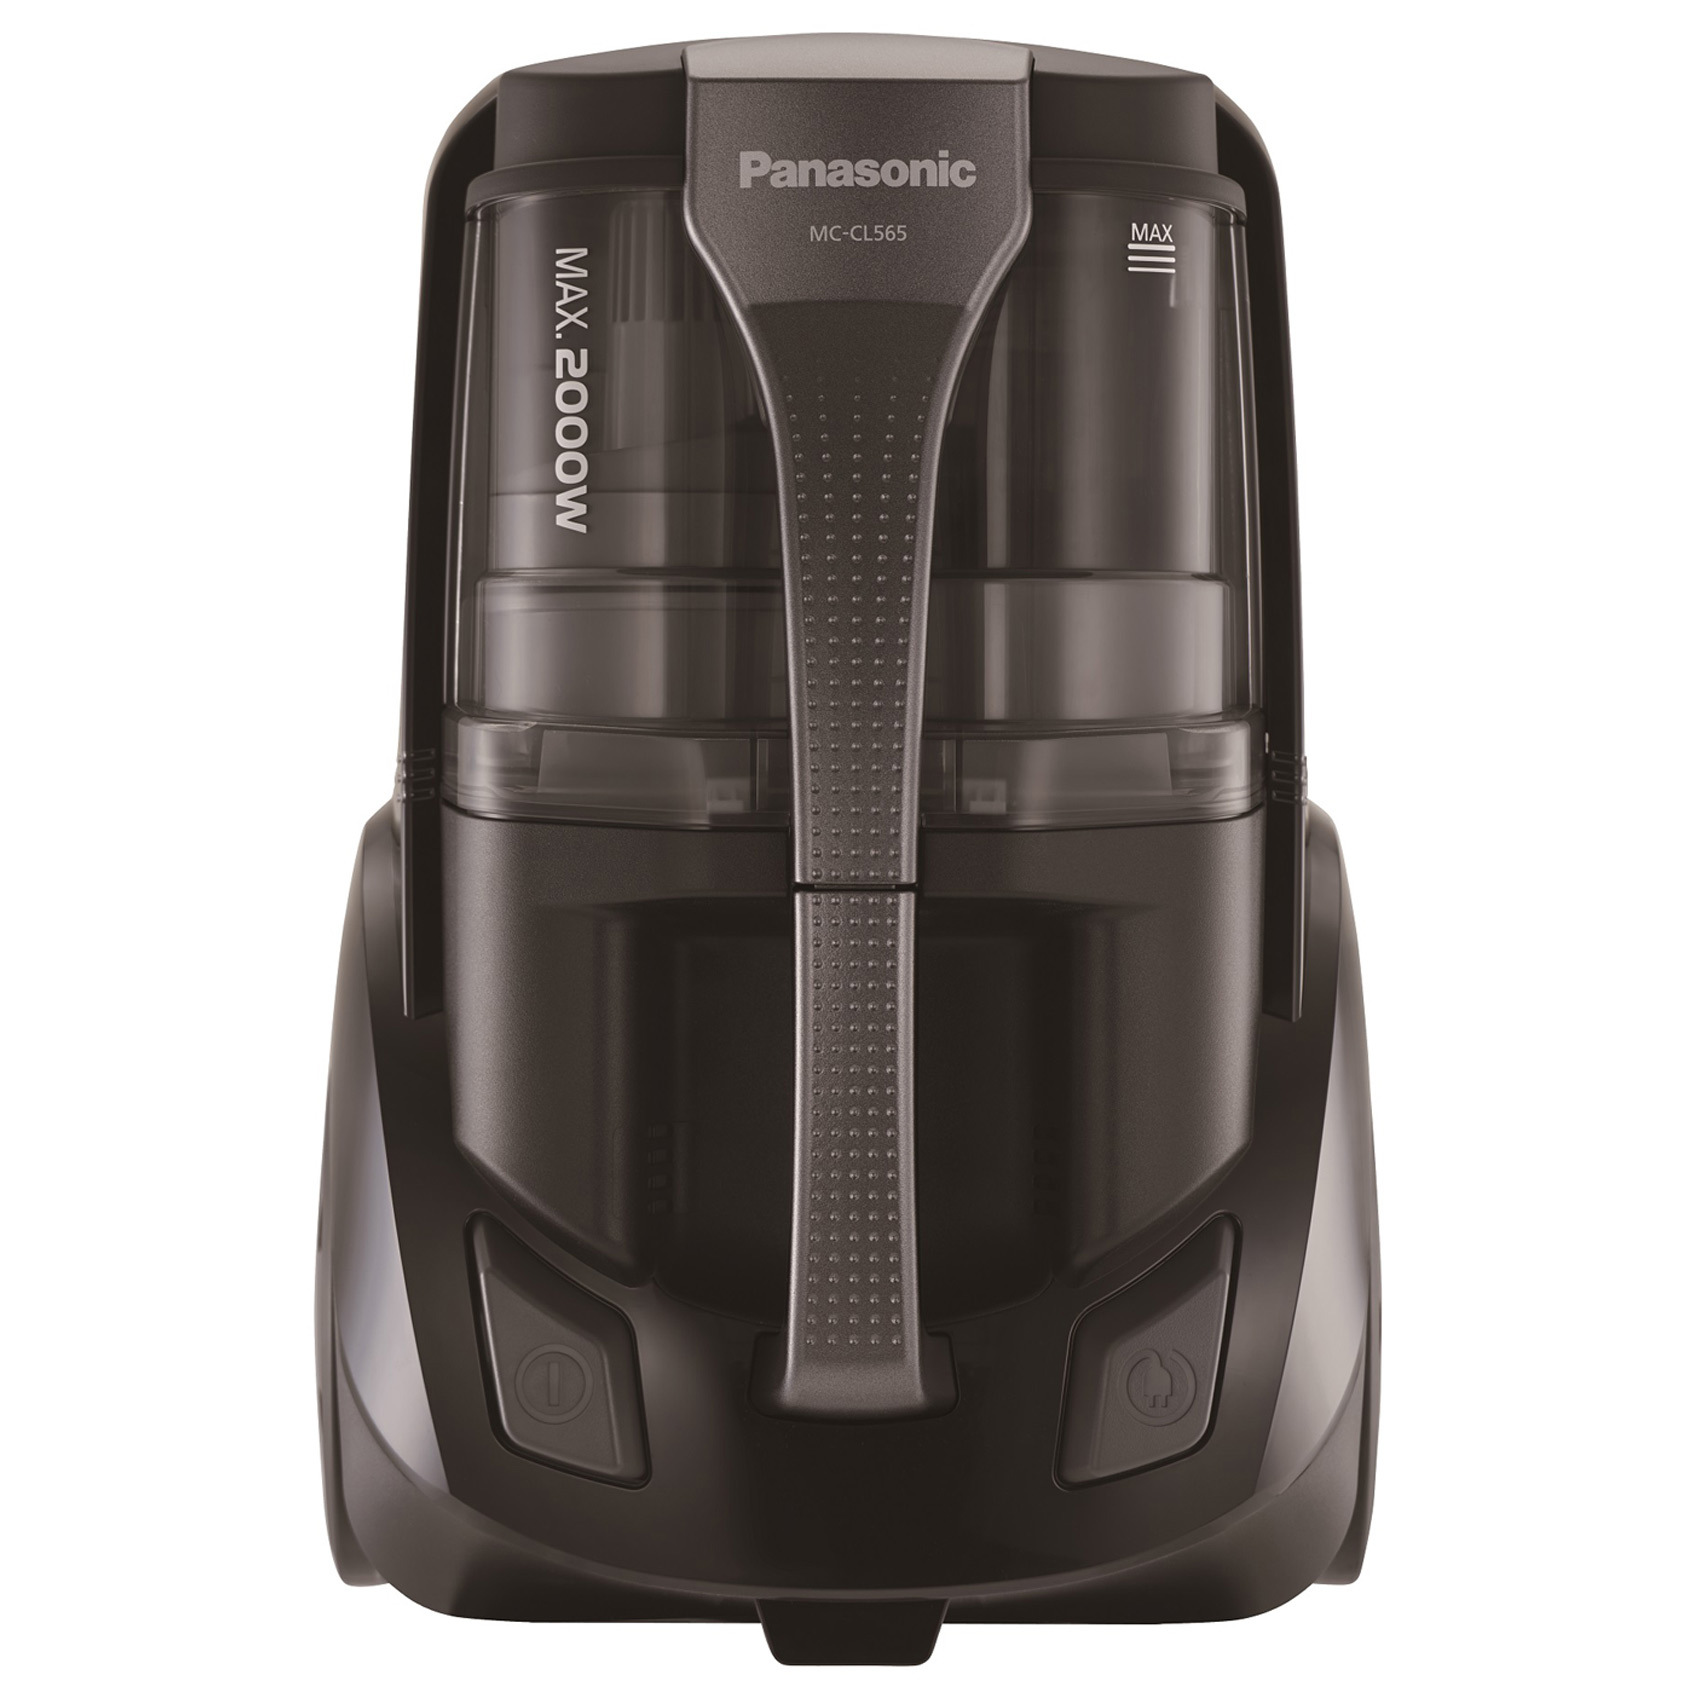 PANASONIC V-CLEANER DRY MCCL565